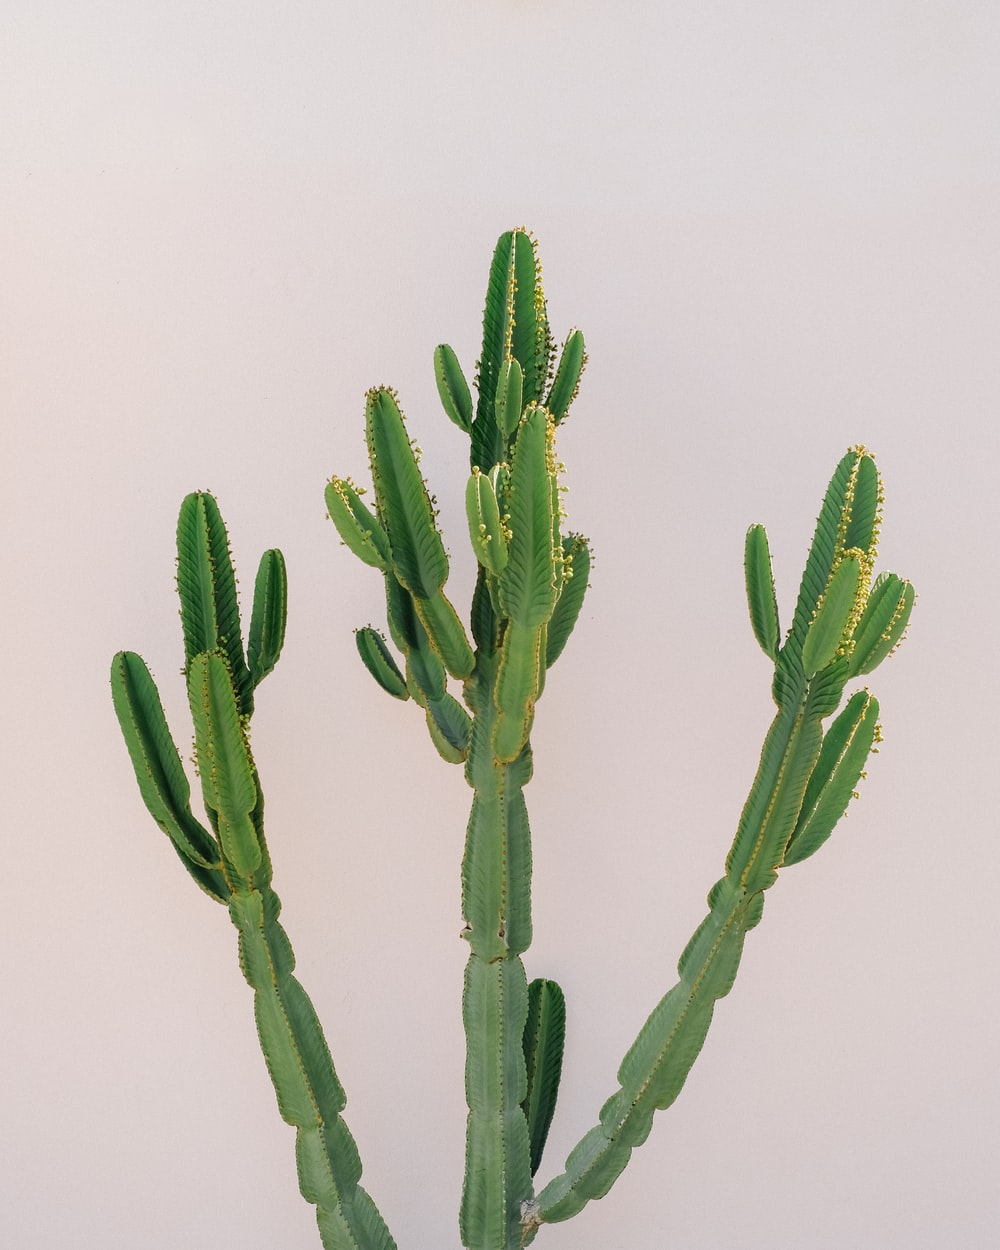 green cactus plant on white background